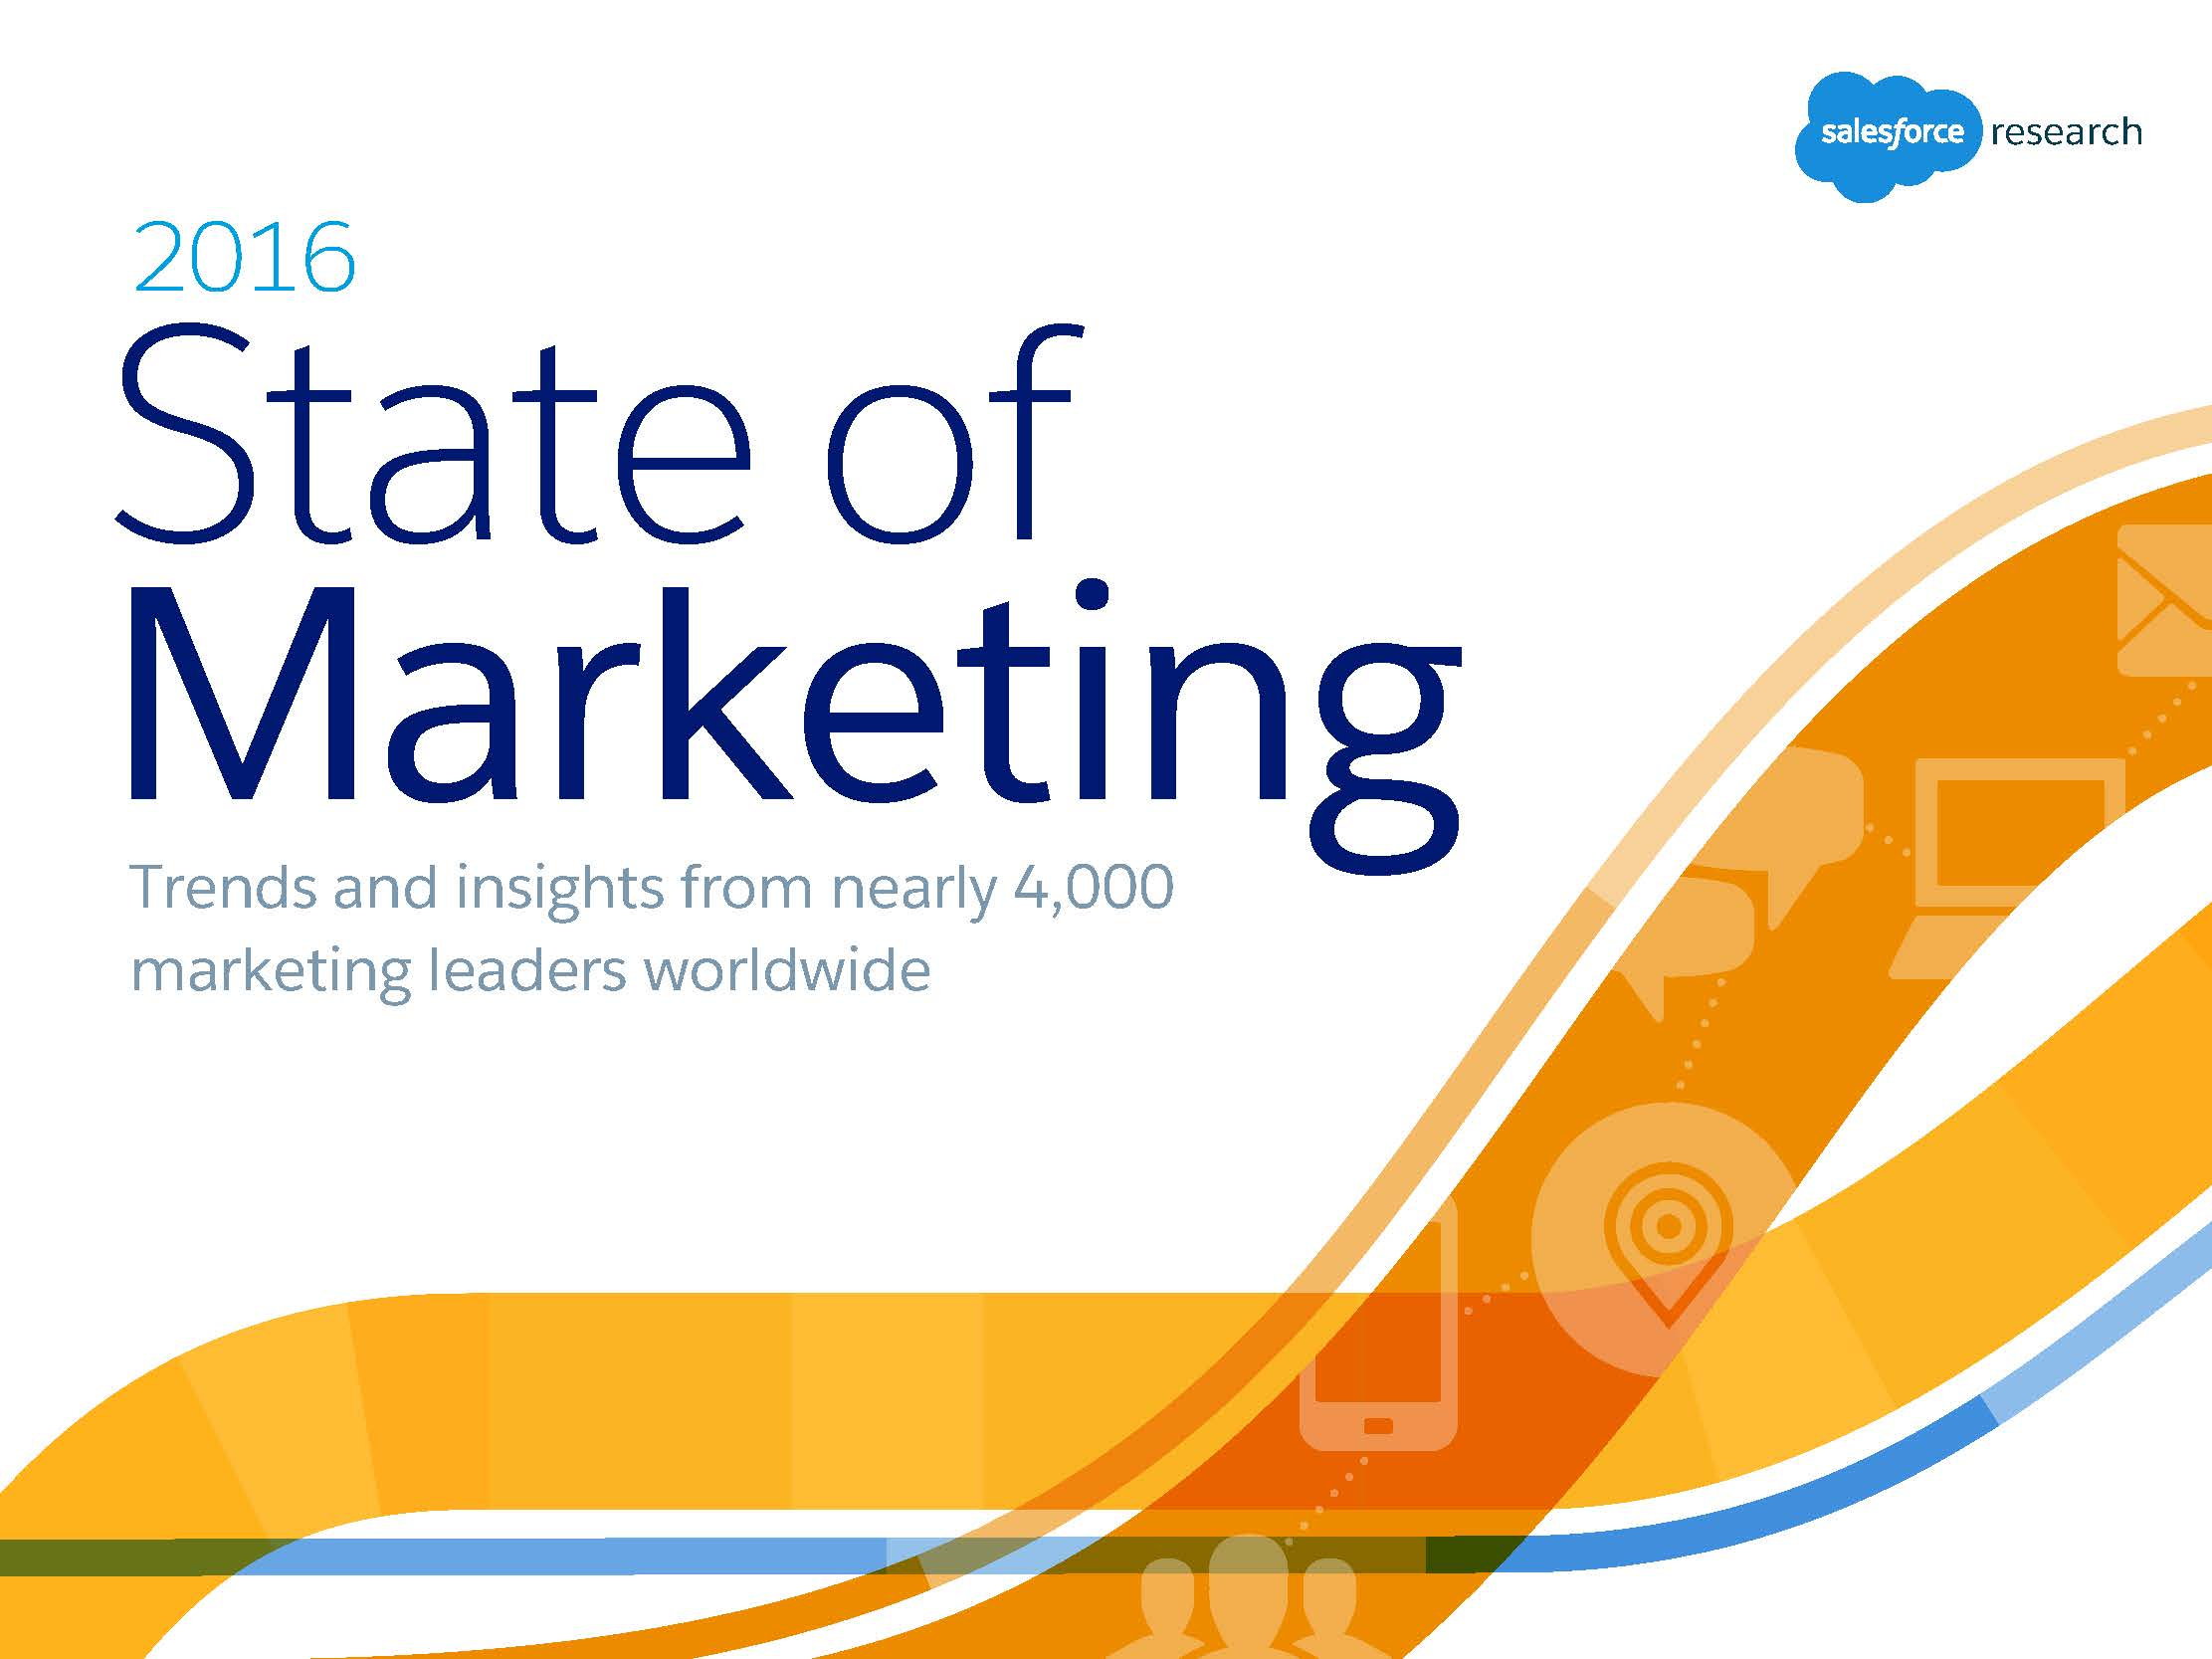 2016 State of Marketing Research Report